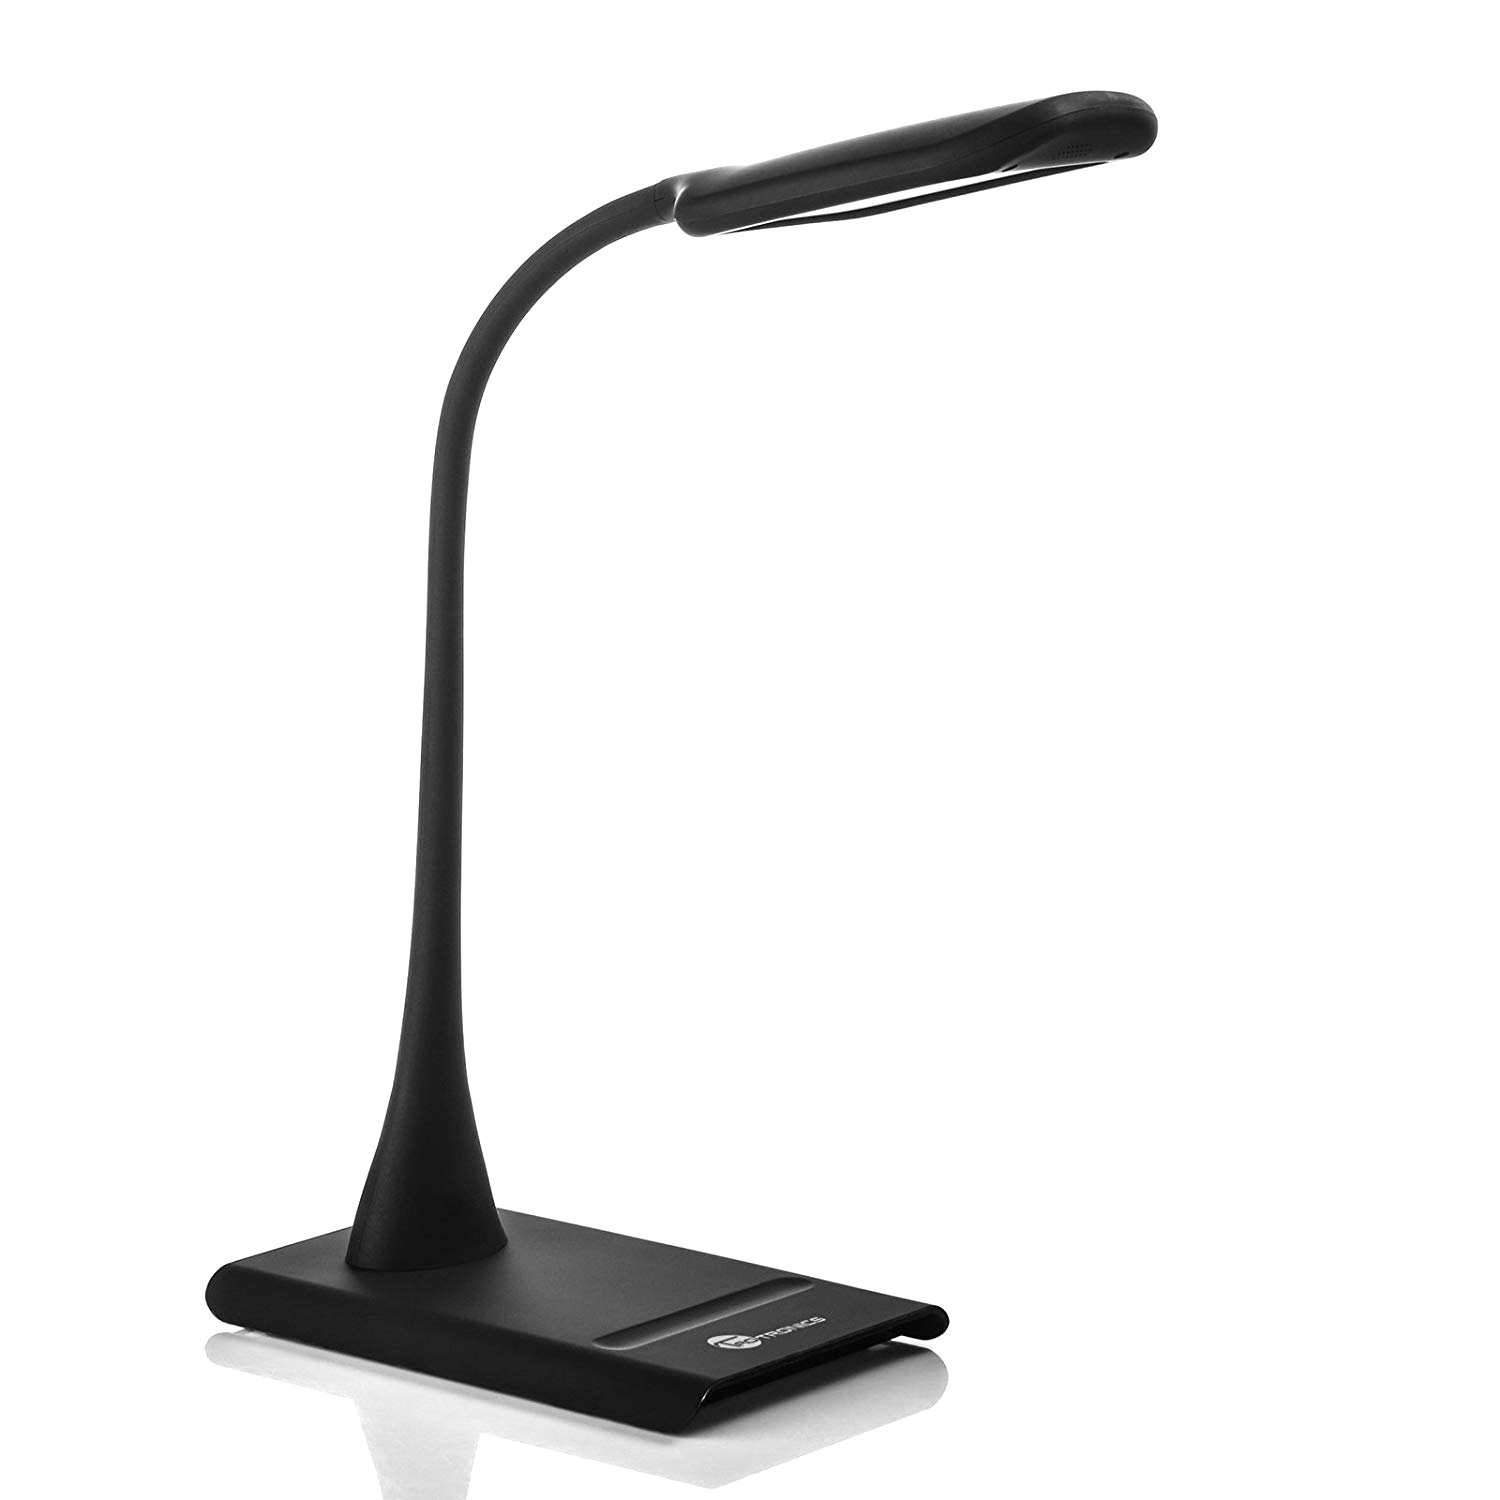 Best ideas about Sunbeam Led Desk Lamp . Save or Pin 49 Various Design Ideas Sunbeam Led Desk Lamp Now.